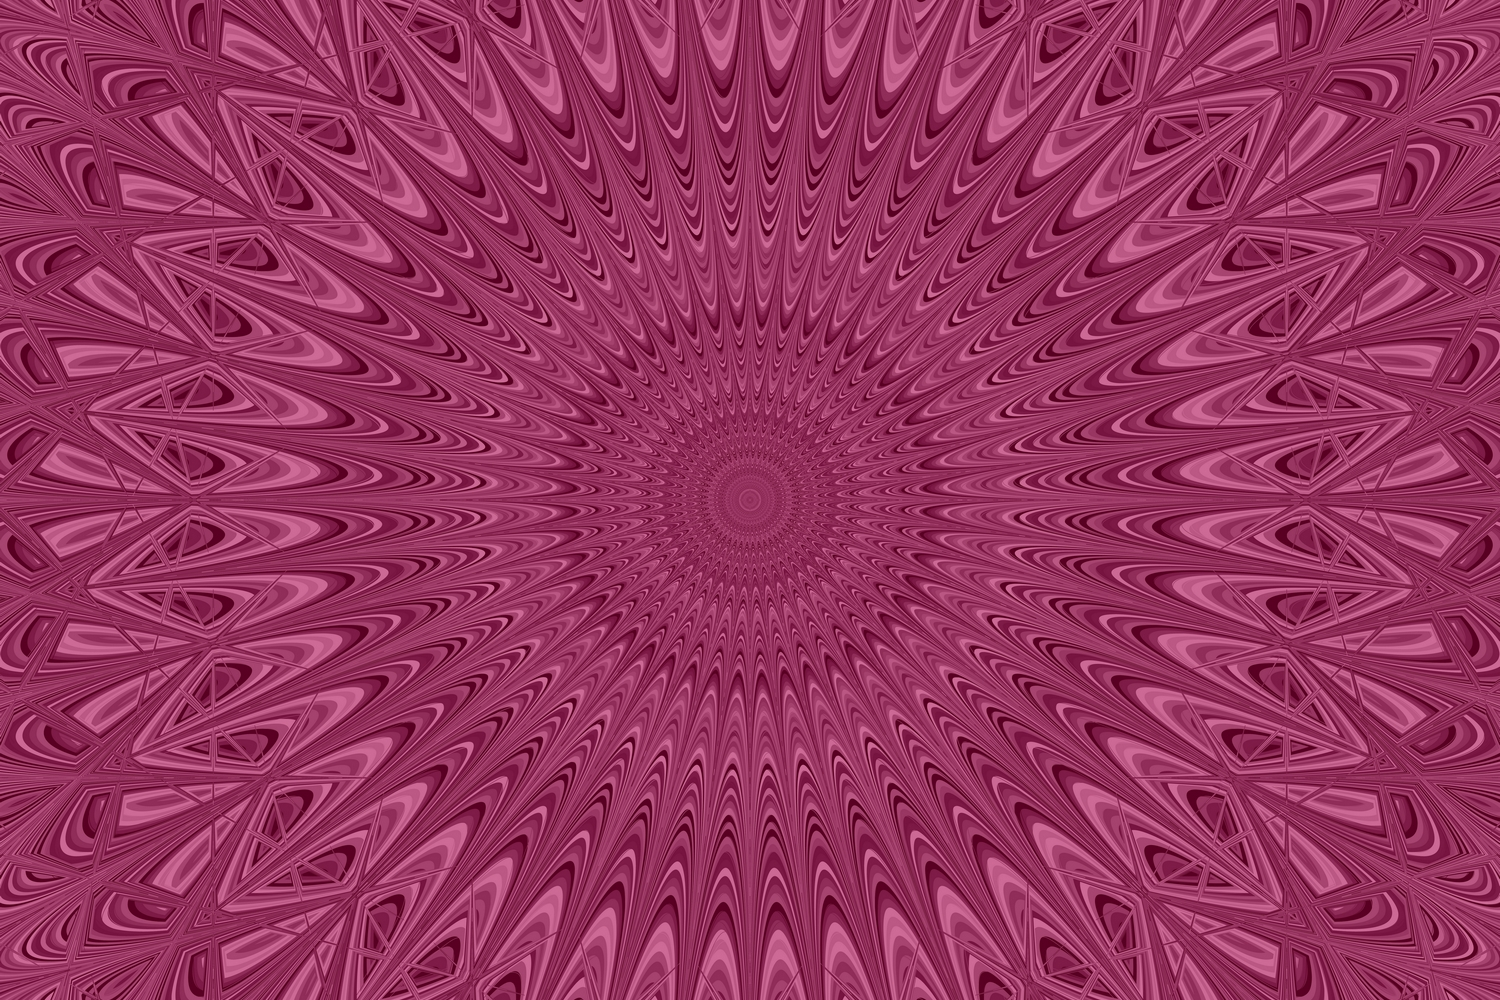 5 Mandala Backgrounds (AI, EPS, JPG 5000x5000) example image 3